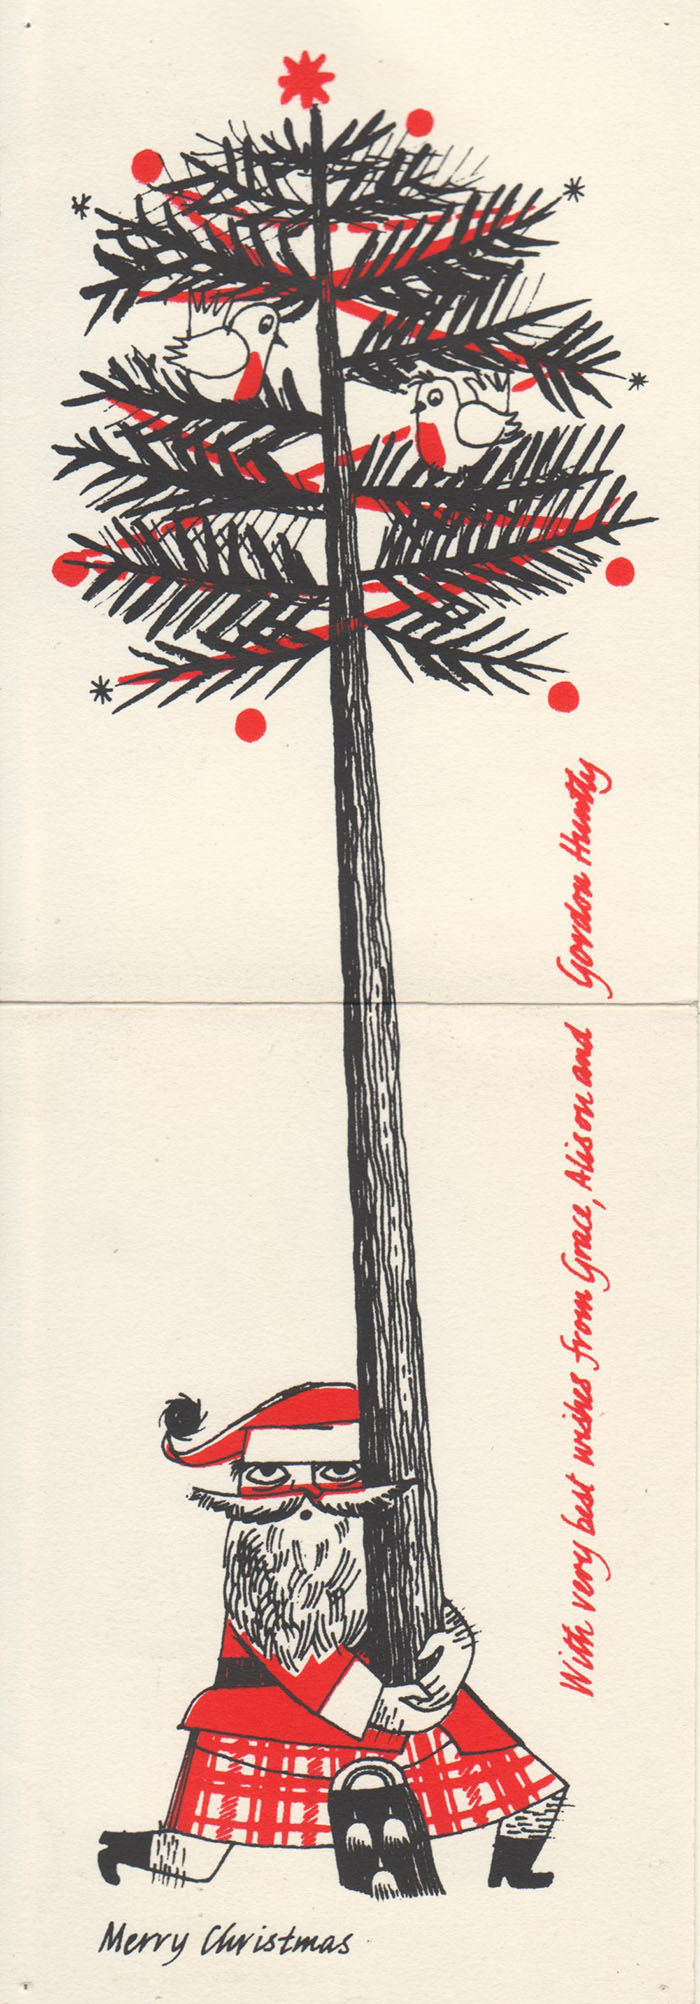 Merry Christmas, c1960s-1970s, by Gordon F Huntly, GSA Archives and Collections (archive reference: DC073/1/35)